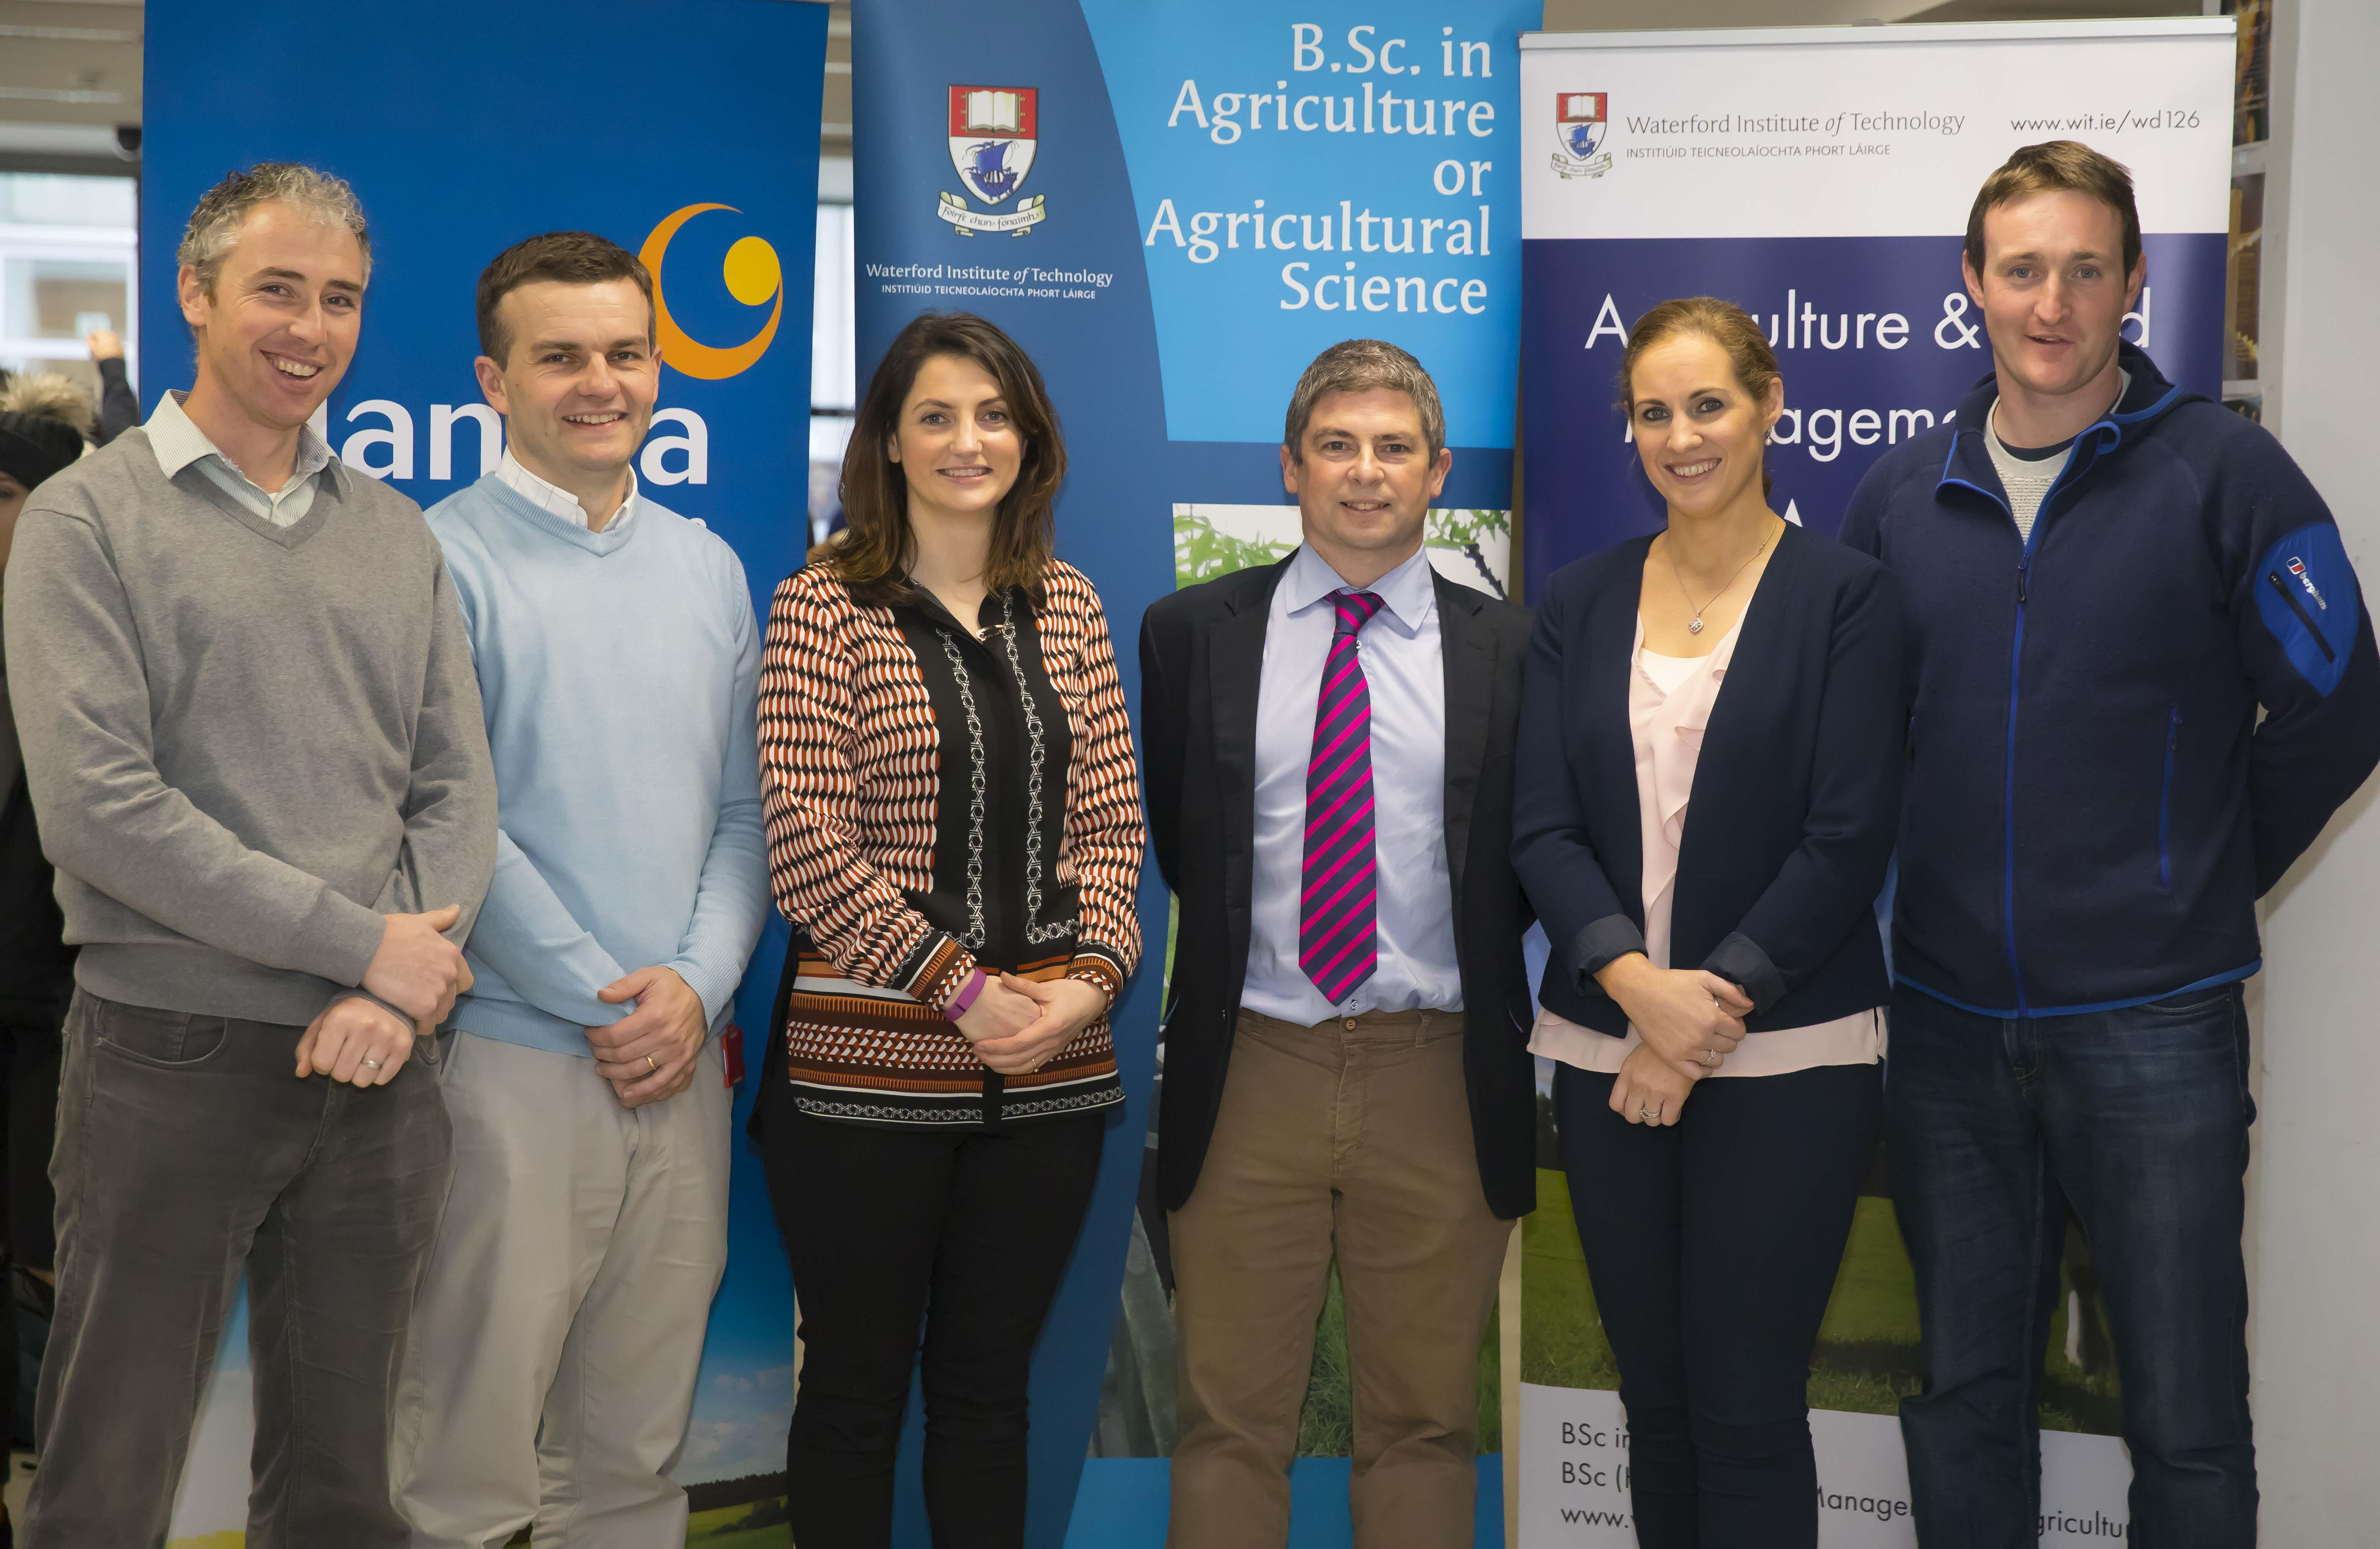 Dr Tony Woodcock, Course Leader for BSc in Agriculture, Dr Michael Breen, Course Leader for BSc (Hons) in Agricultural Science, Dr Siobhán Walsh, Work placement co-ordinator and Agricultural Science Association (ASA) council member, Dr Tim O'Donovan, Arvum Group, Mary Delaney, Glanbia and ASA President, Dr Bill Keogh, Lecturer in Agricultural Science